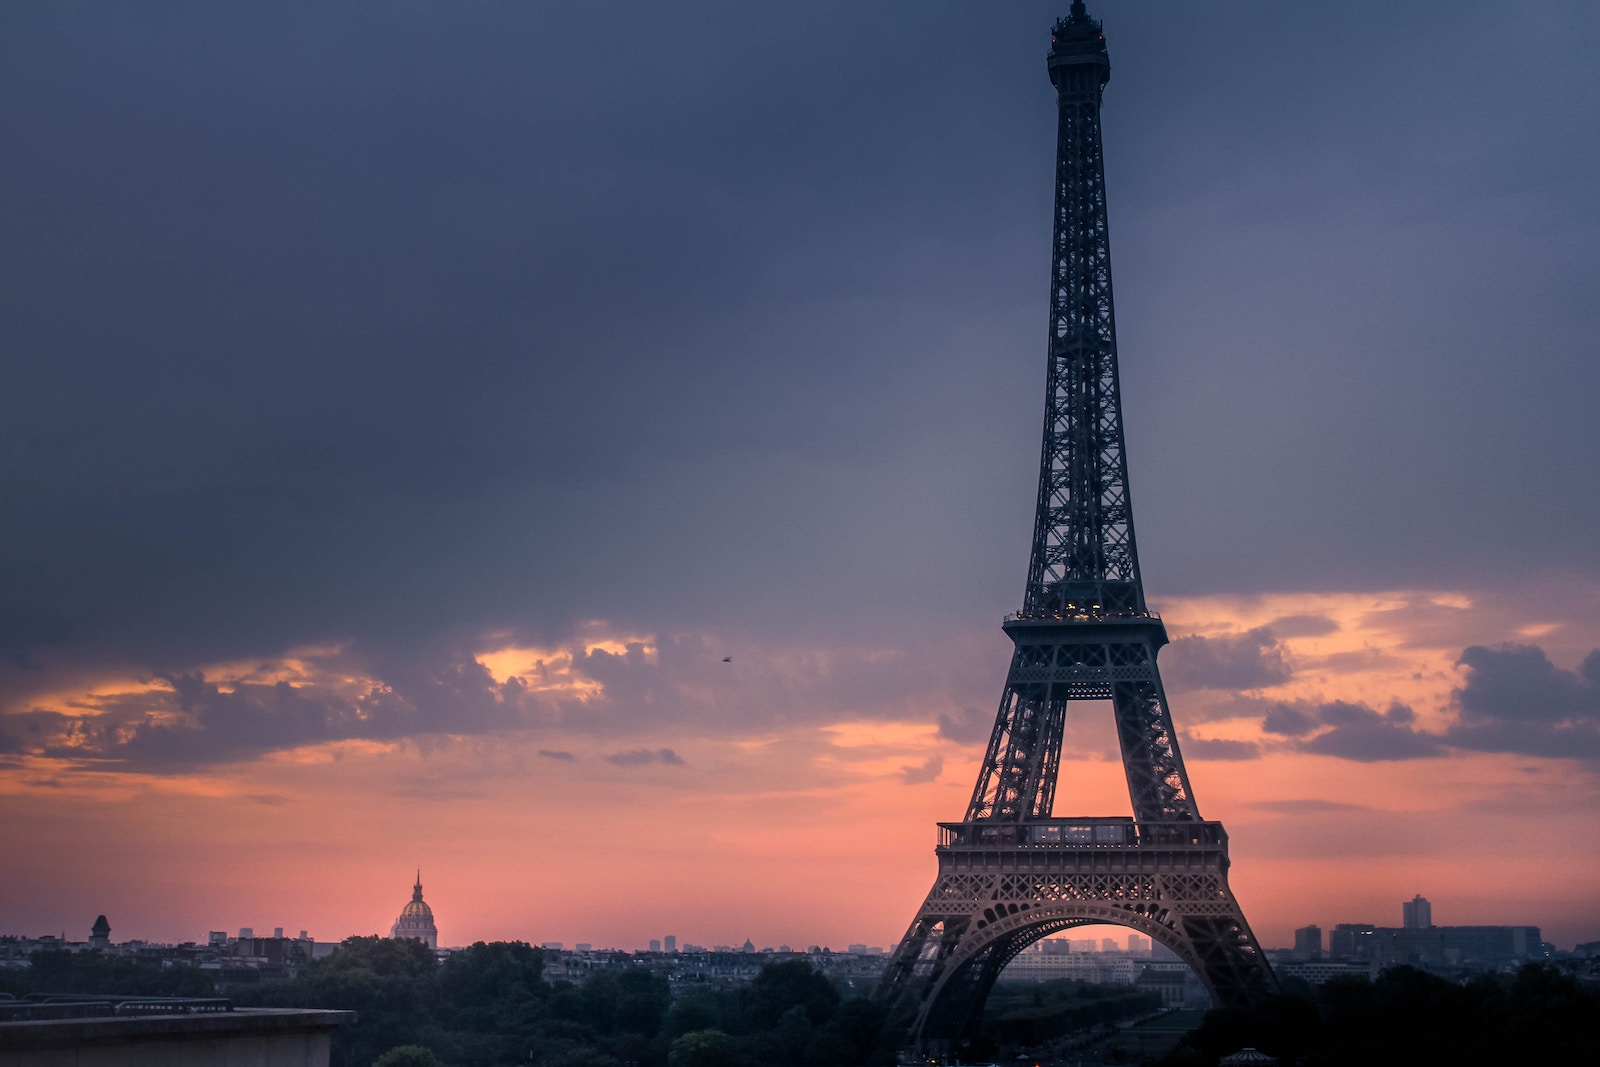 Eiffel Tower in Paris France at sunset